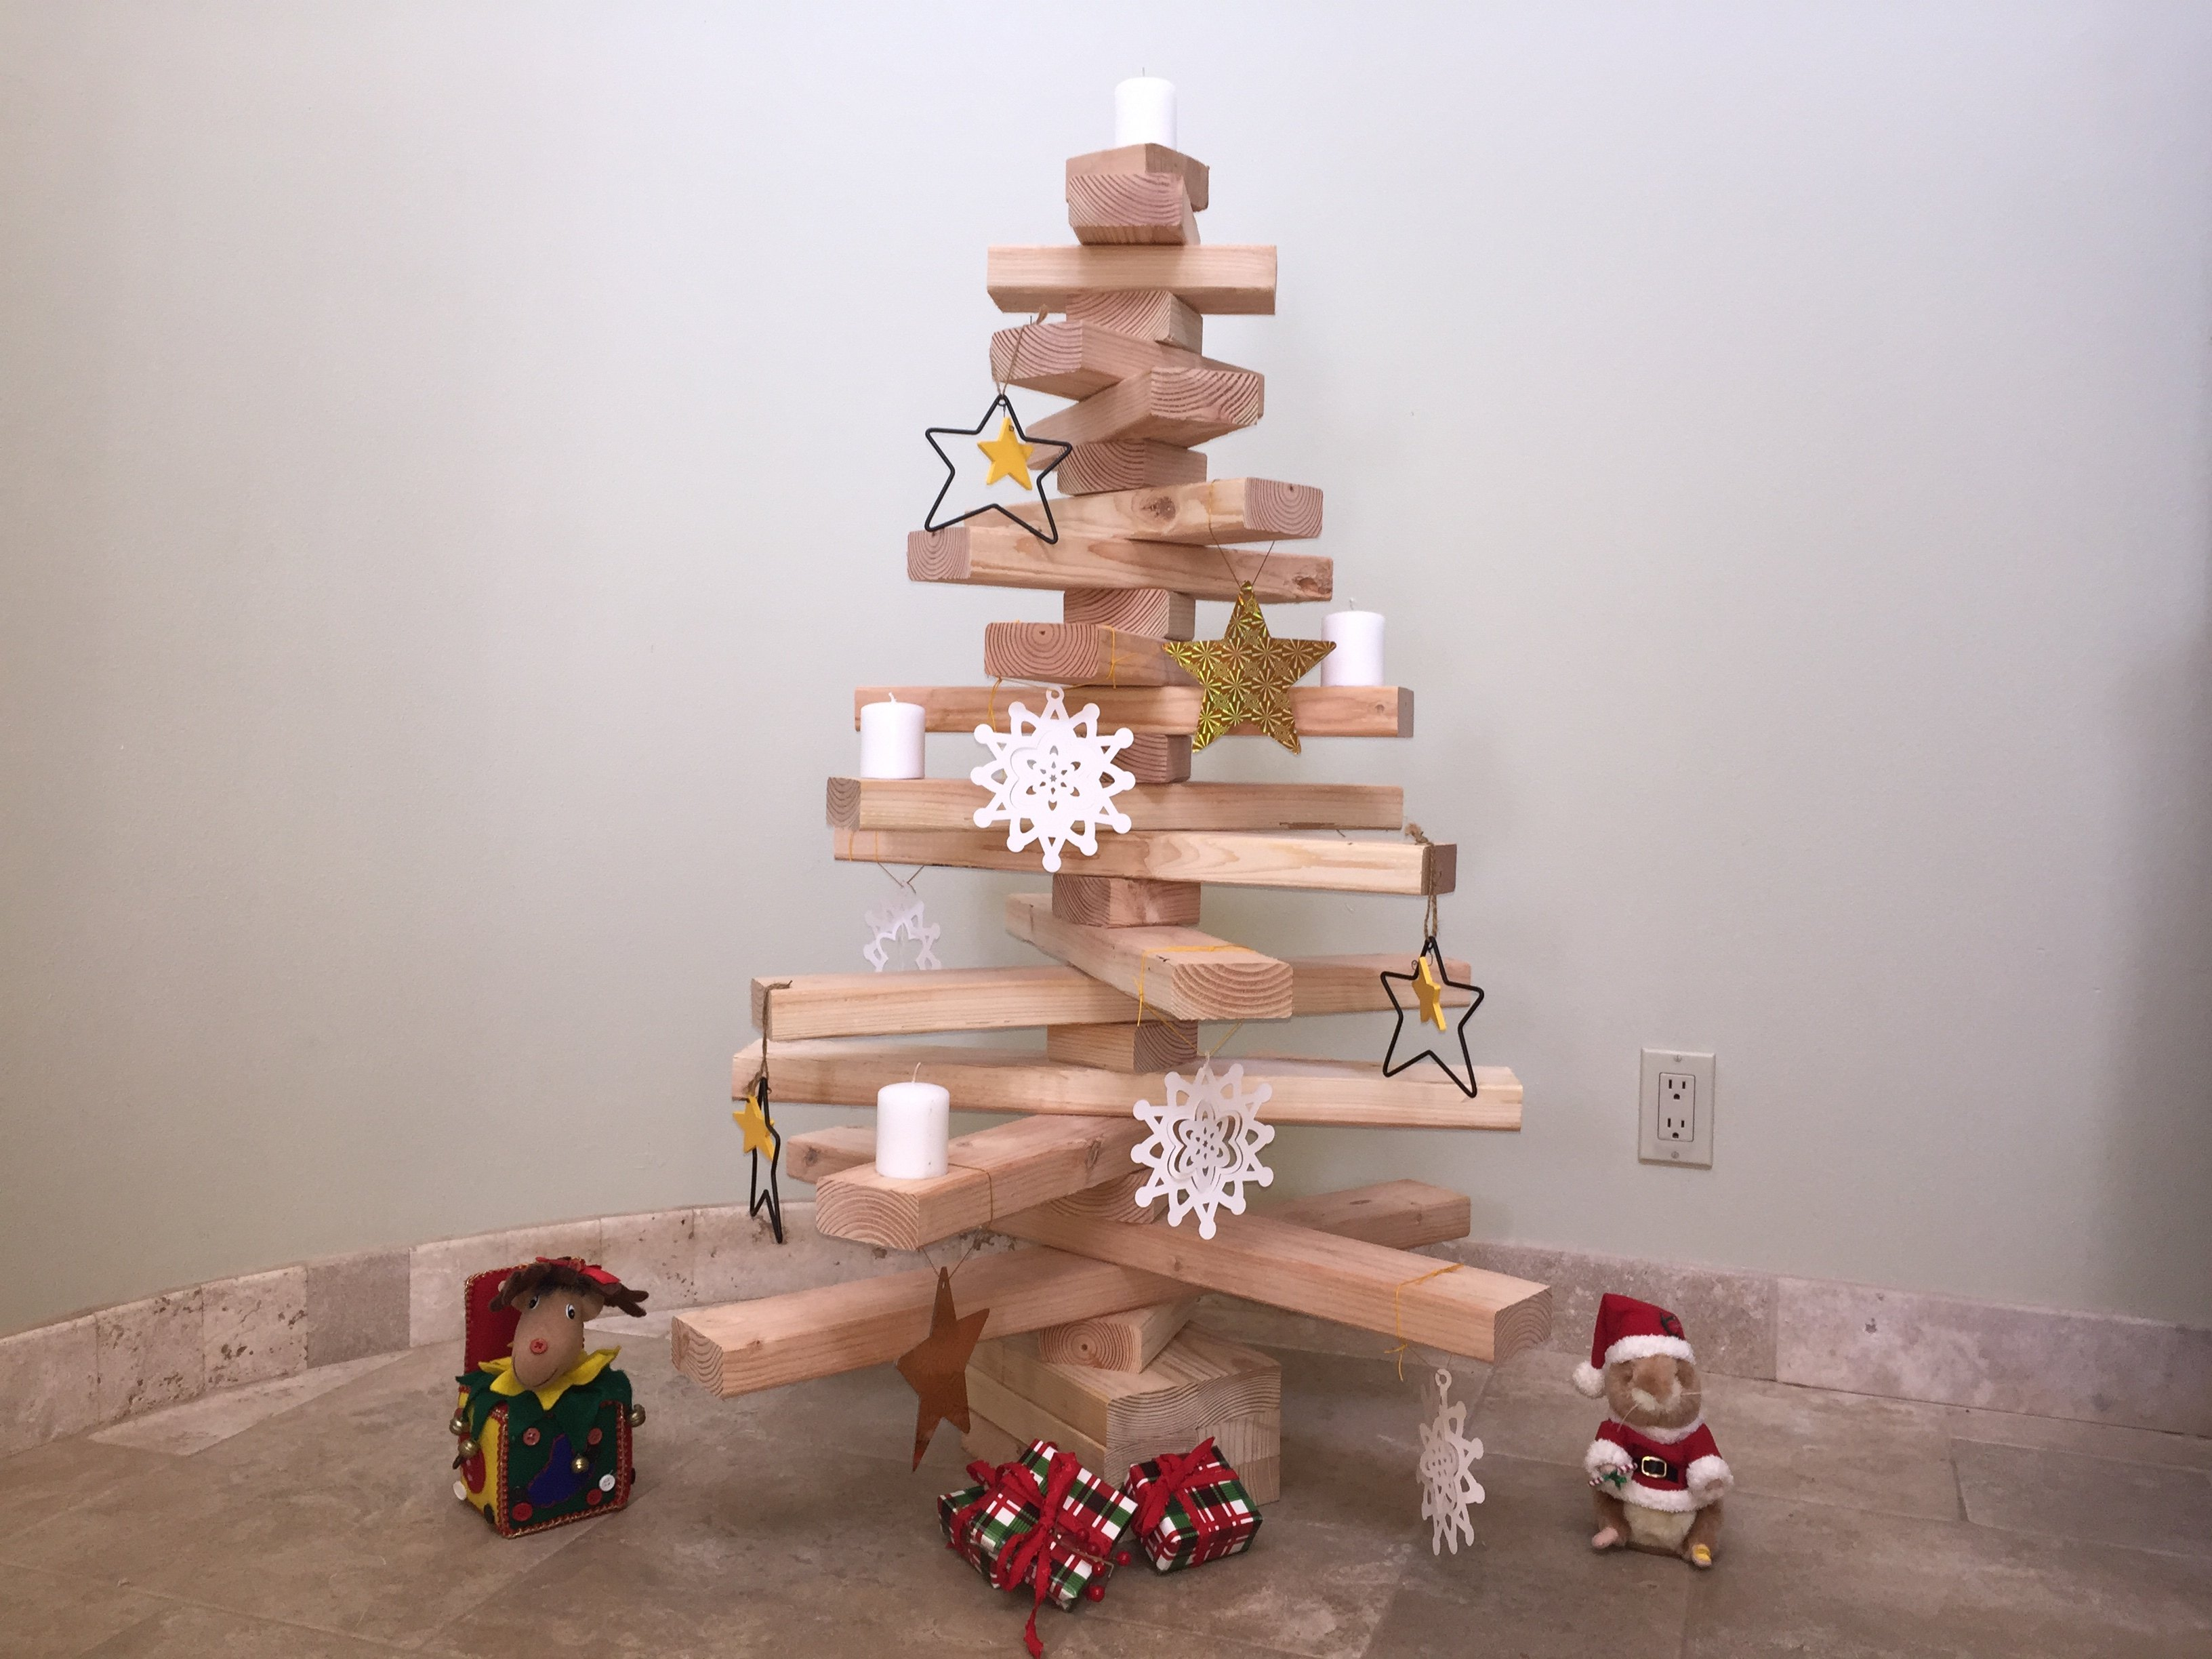 How To Make A Wooden Christmas Tree (with Pictures)